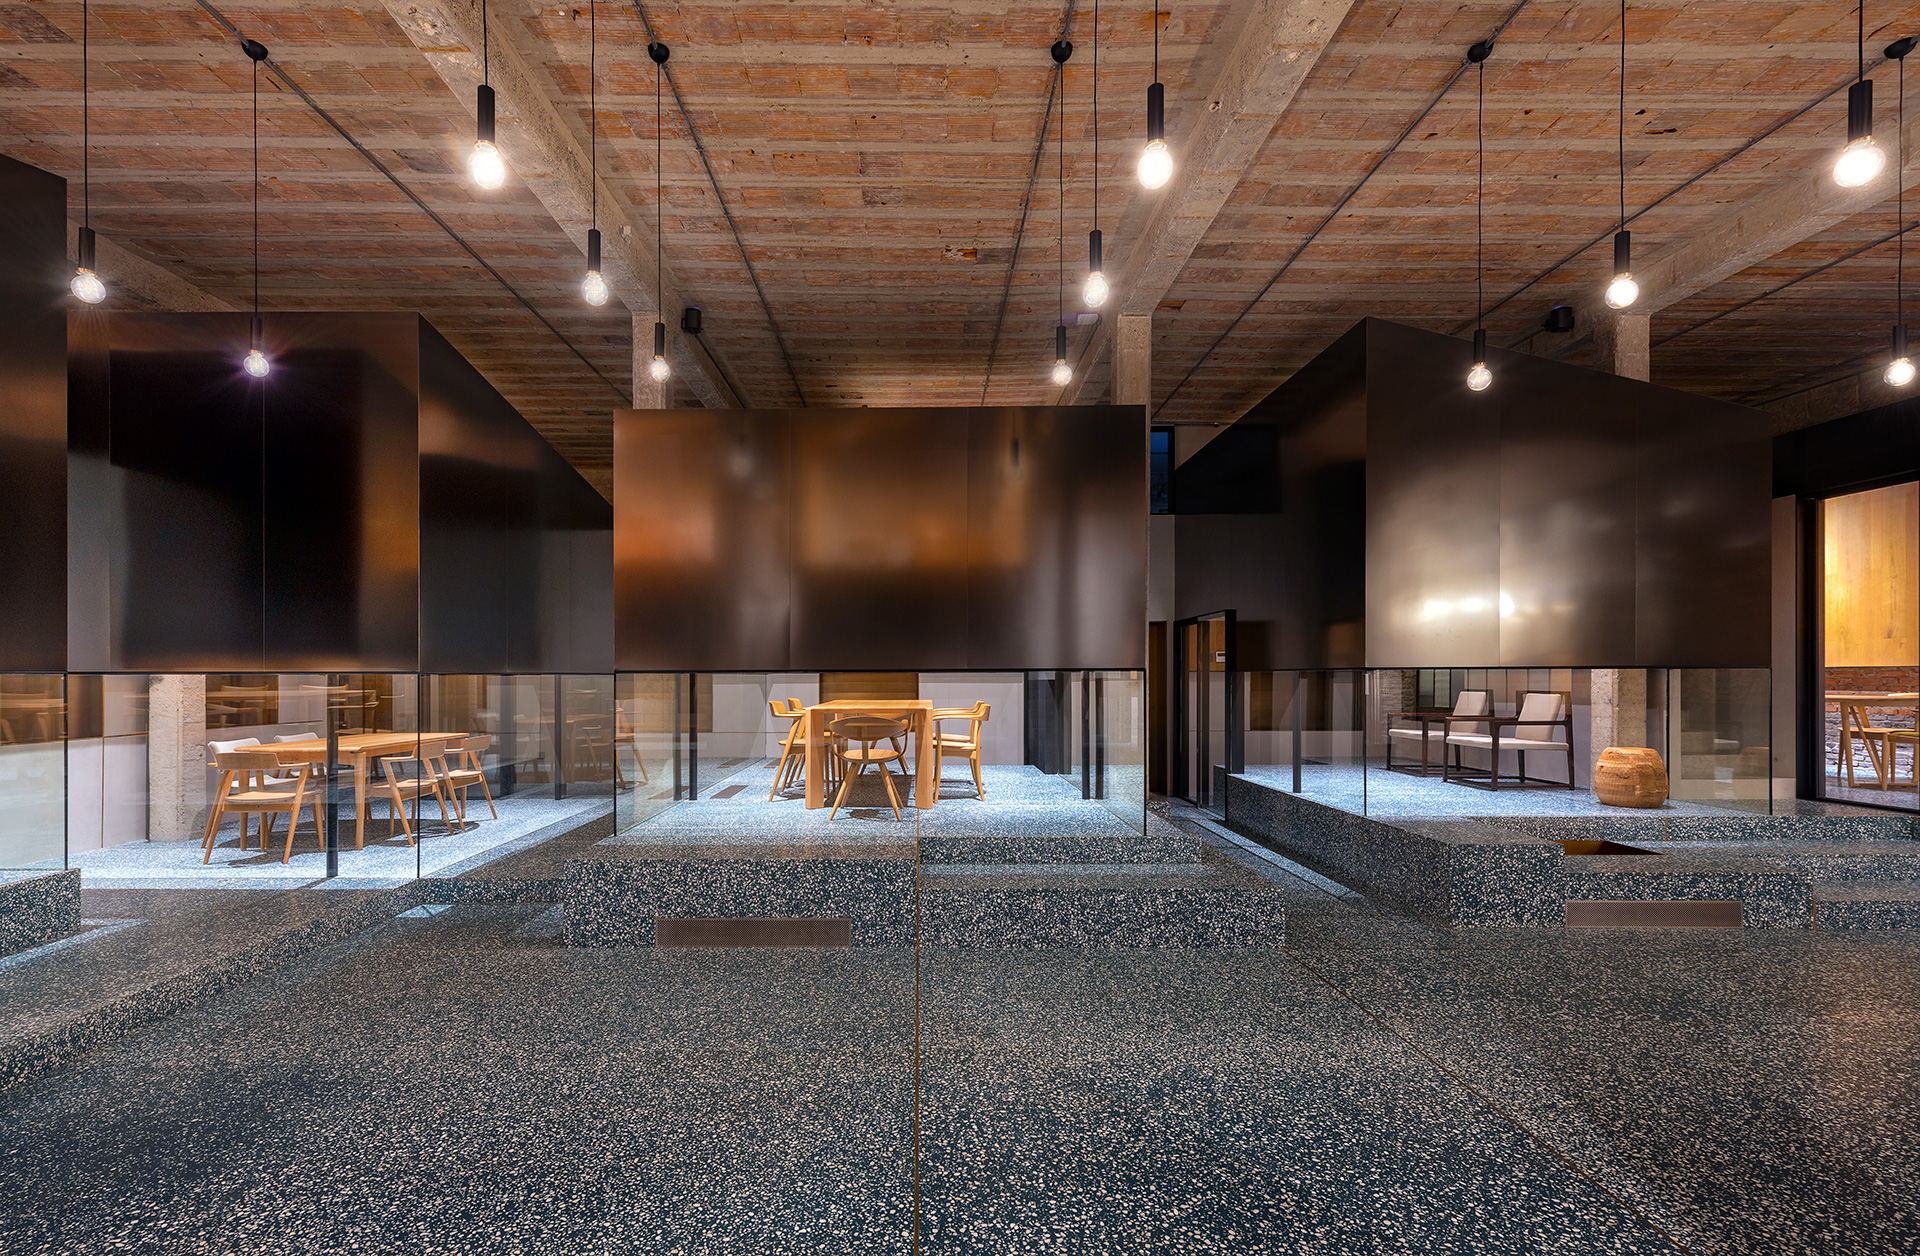 A view of the semi-open teahouses with brushed stainless steel and glass cladding | Tingtai Teahouse | Linehouse | STIRworld